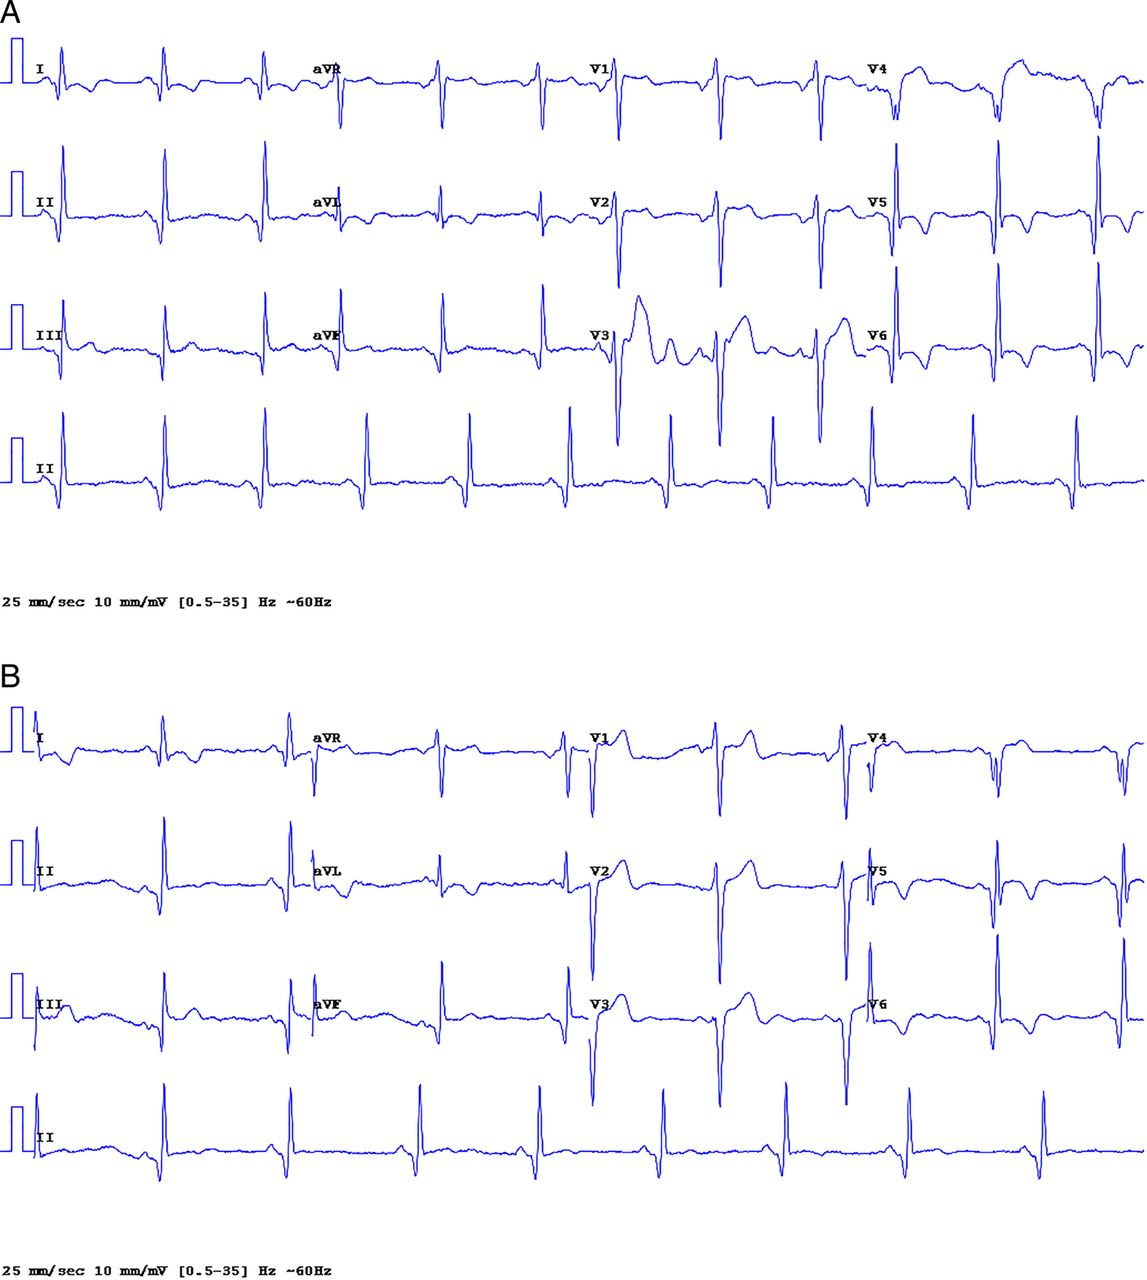 A New Electrode Placement Method For Obtaining 12 Lead Ecgs